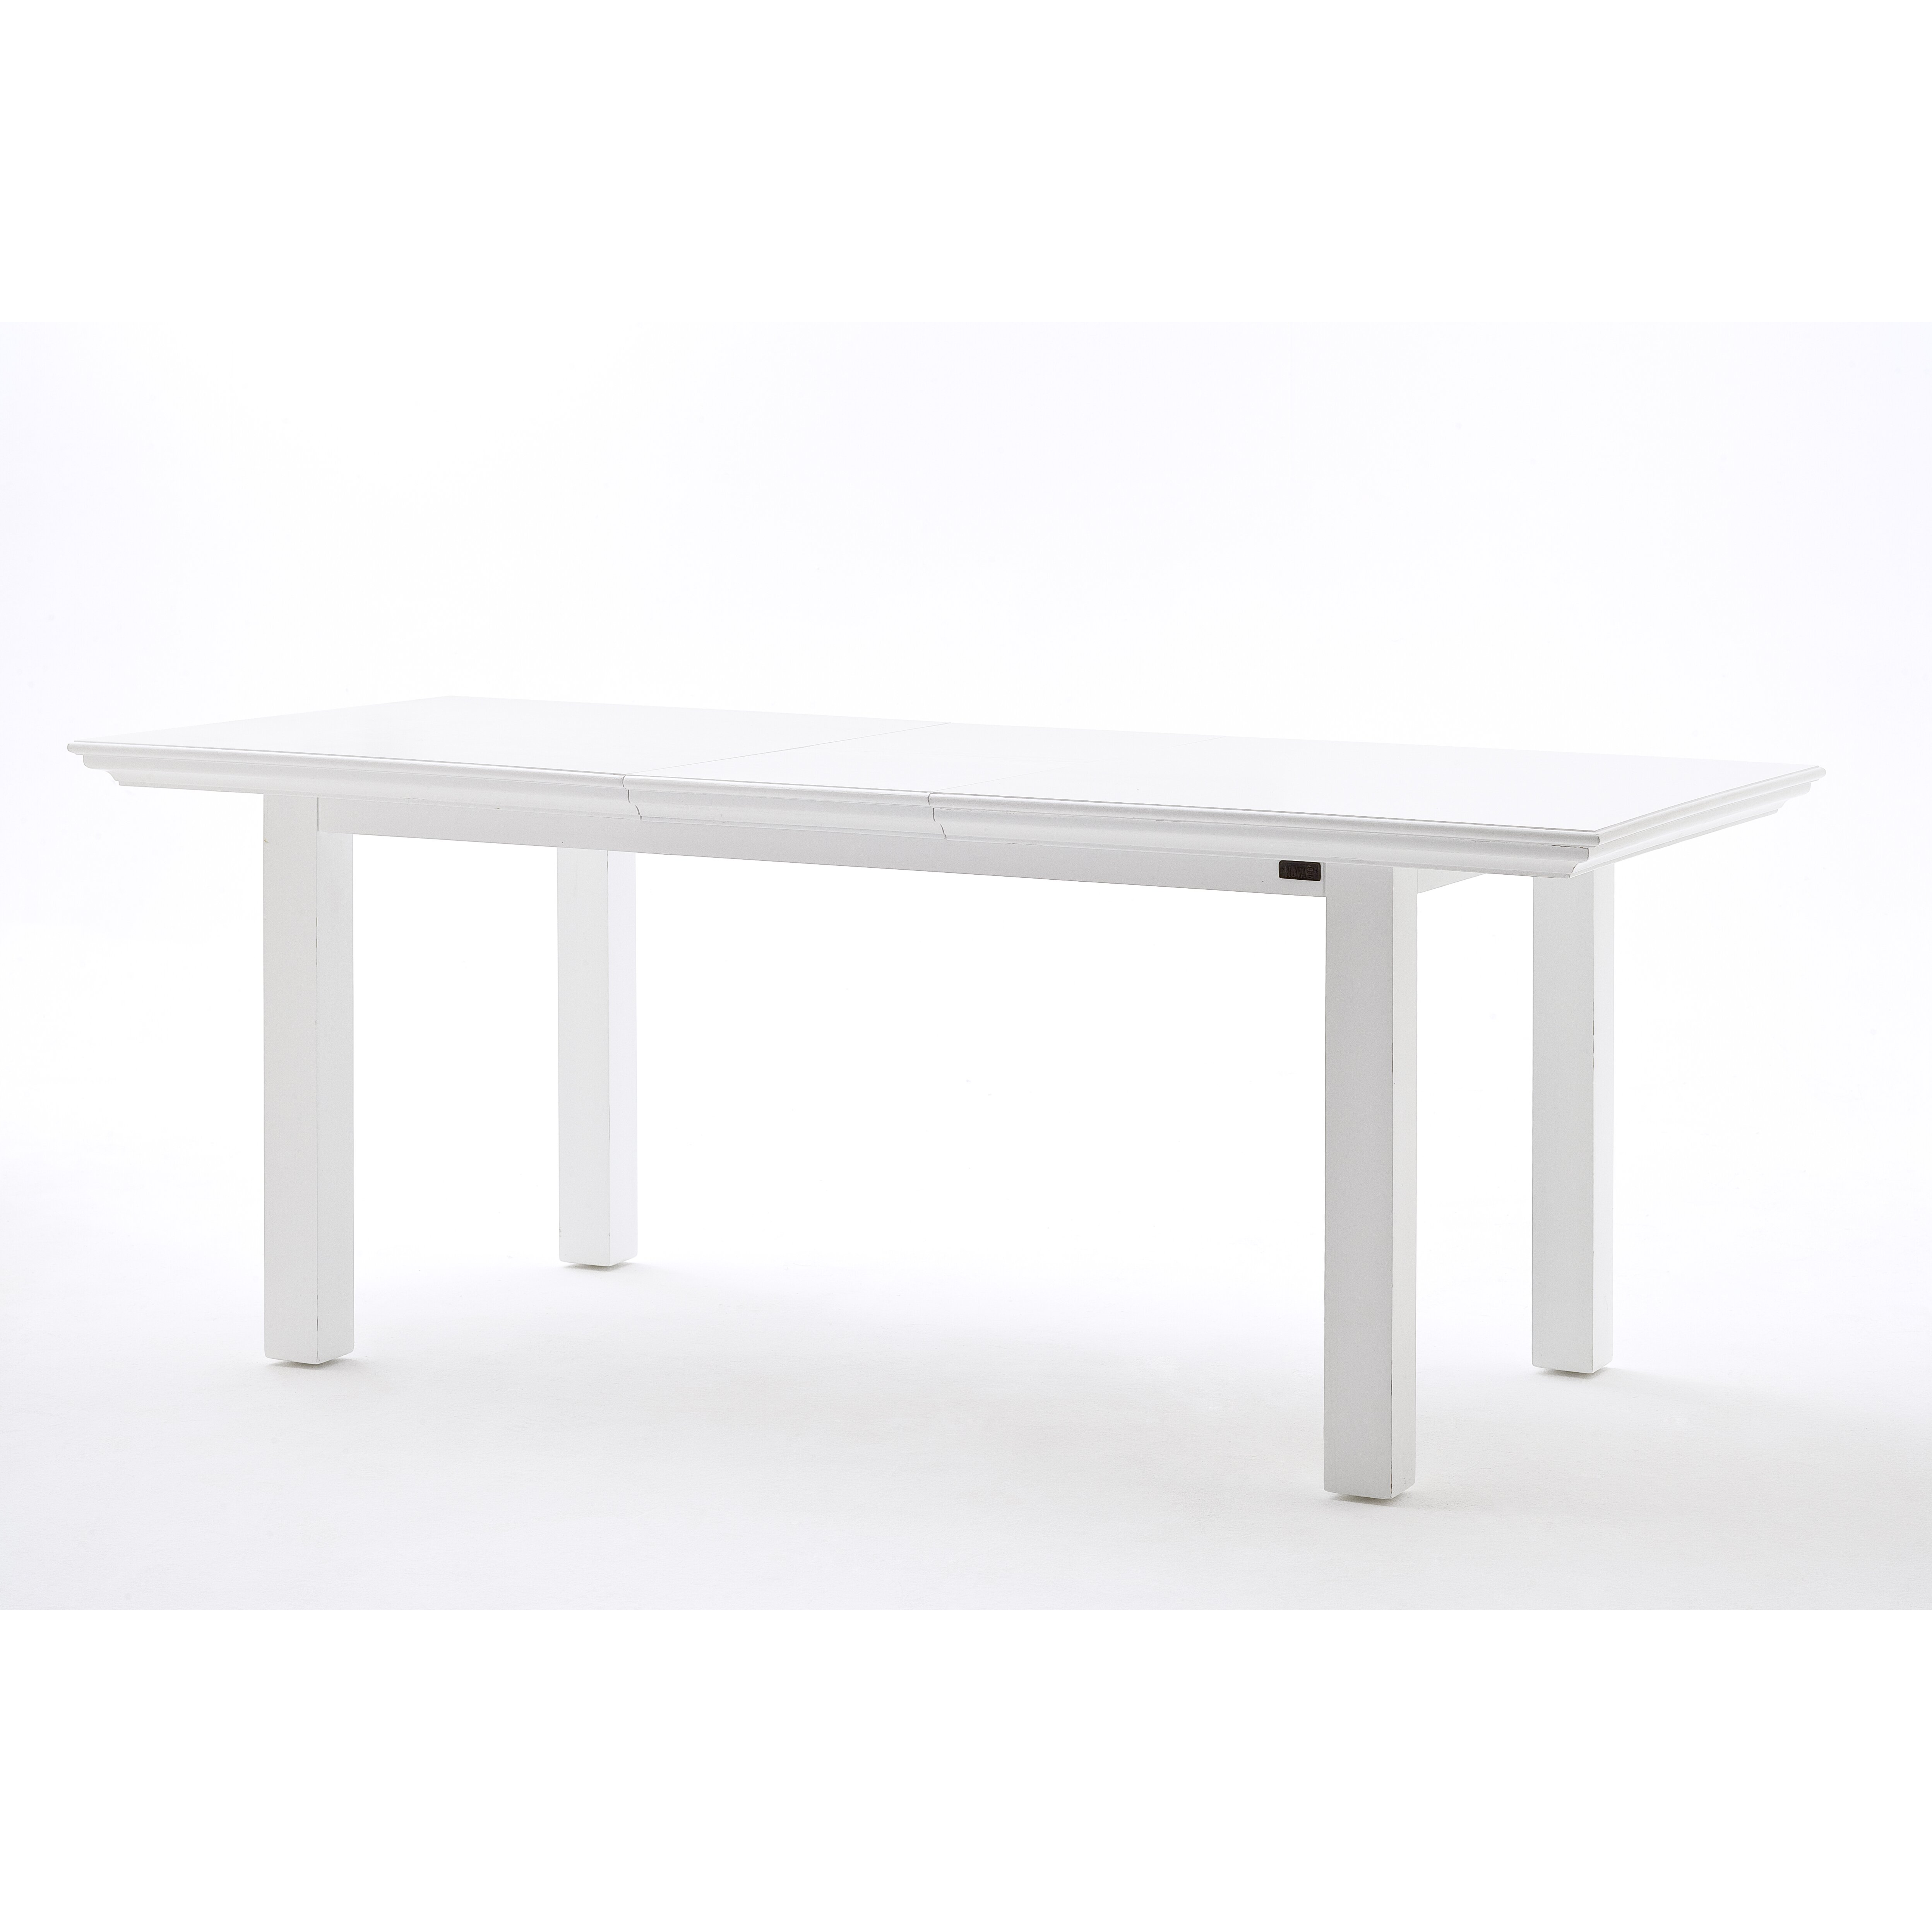 NovaSolo Halifax Extendable Dining Table